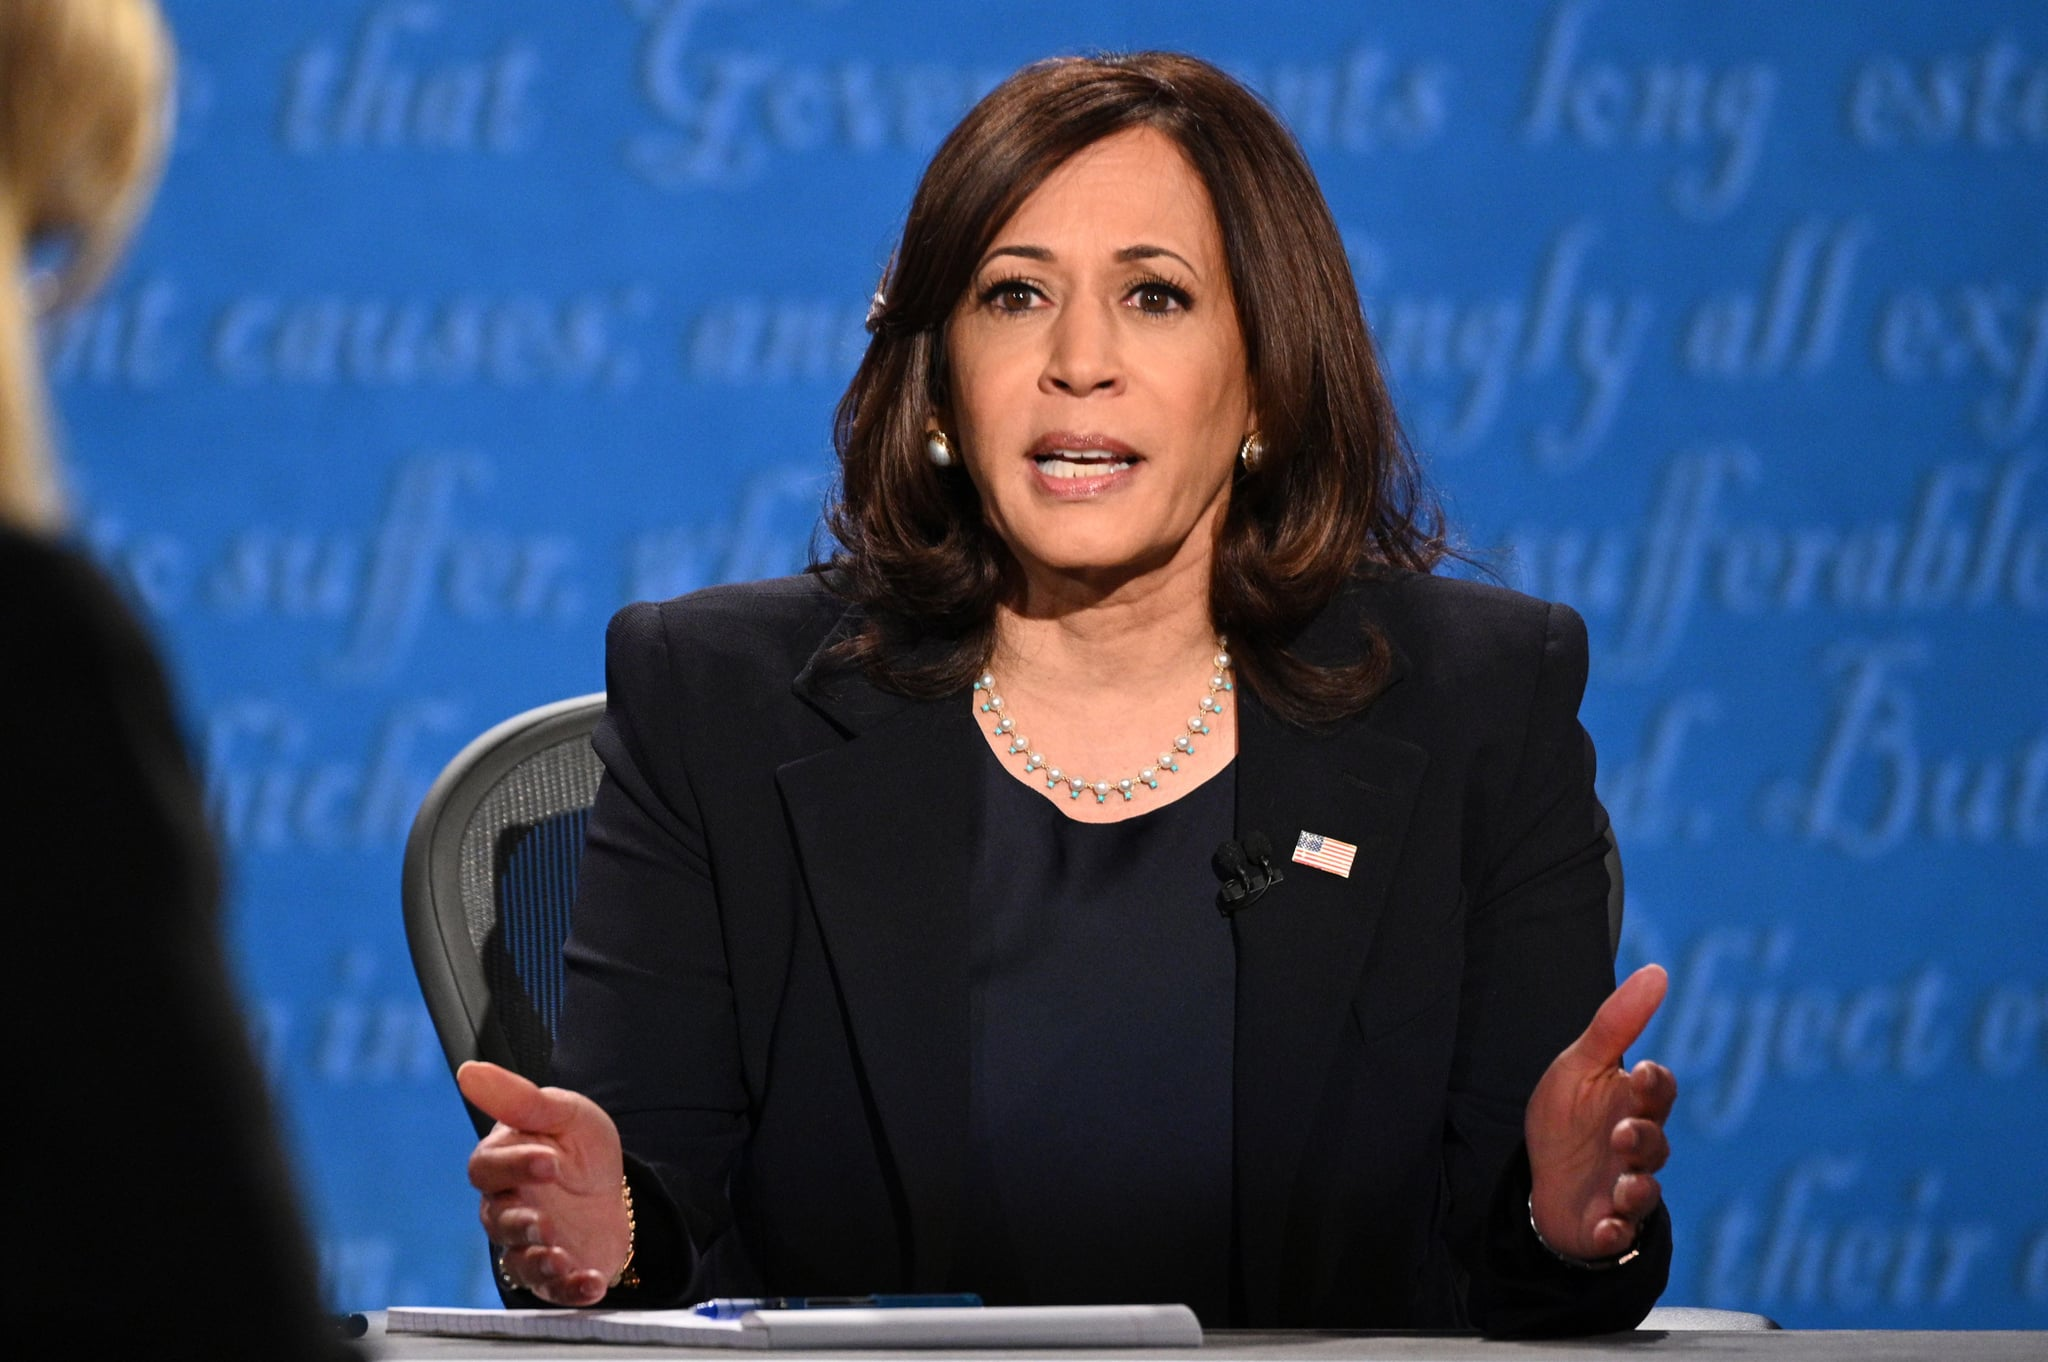 US Democratic vice presidential nominee and Senator from California, Kamala Harris speaks during the vice presidential debate in Kingsbury Hall at the University of Utah on October 7, 2020, in Salt Lake City, Utah. (Photo by Robyn Beck / AFP) (Photo by ROBYN BECK/AFP via Getty Images)